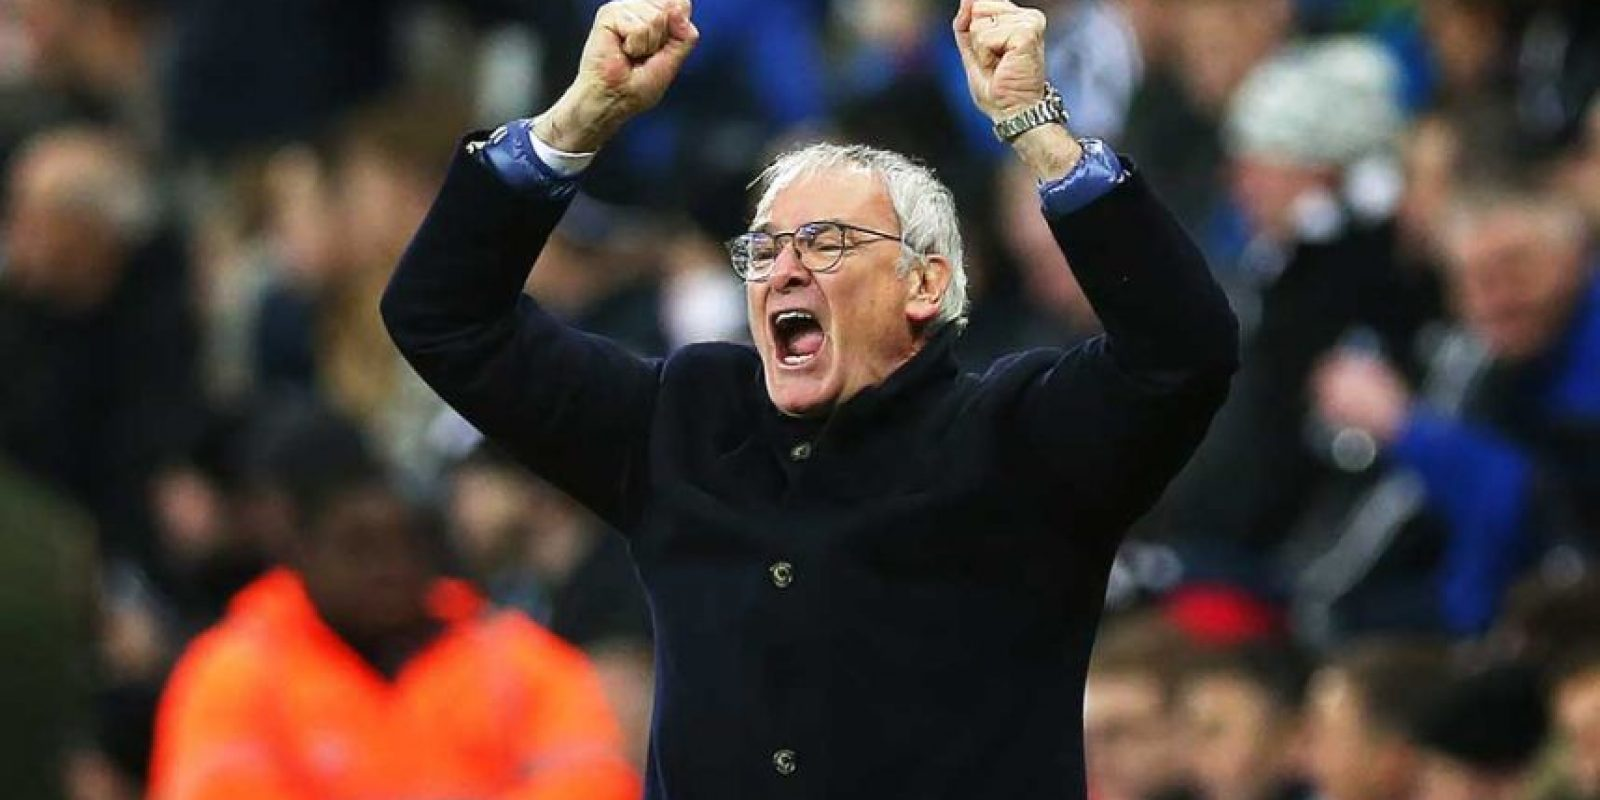 DT: Claudio Ranieri Foto: Getty Images